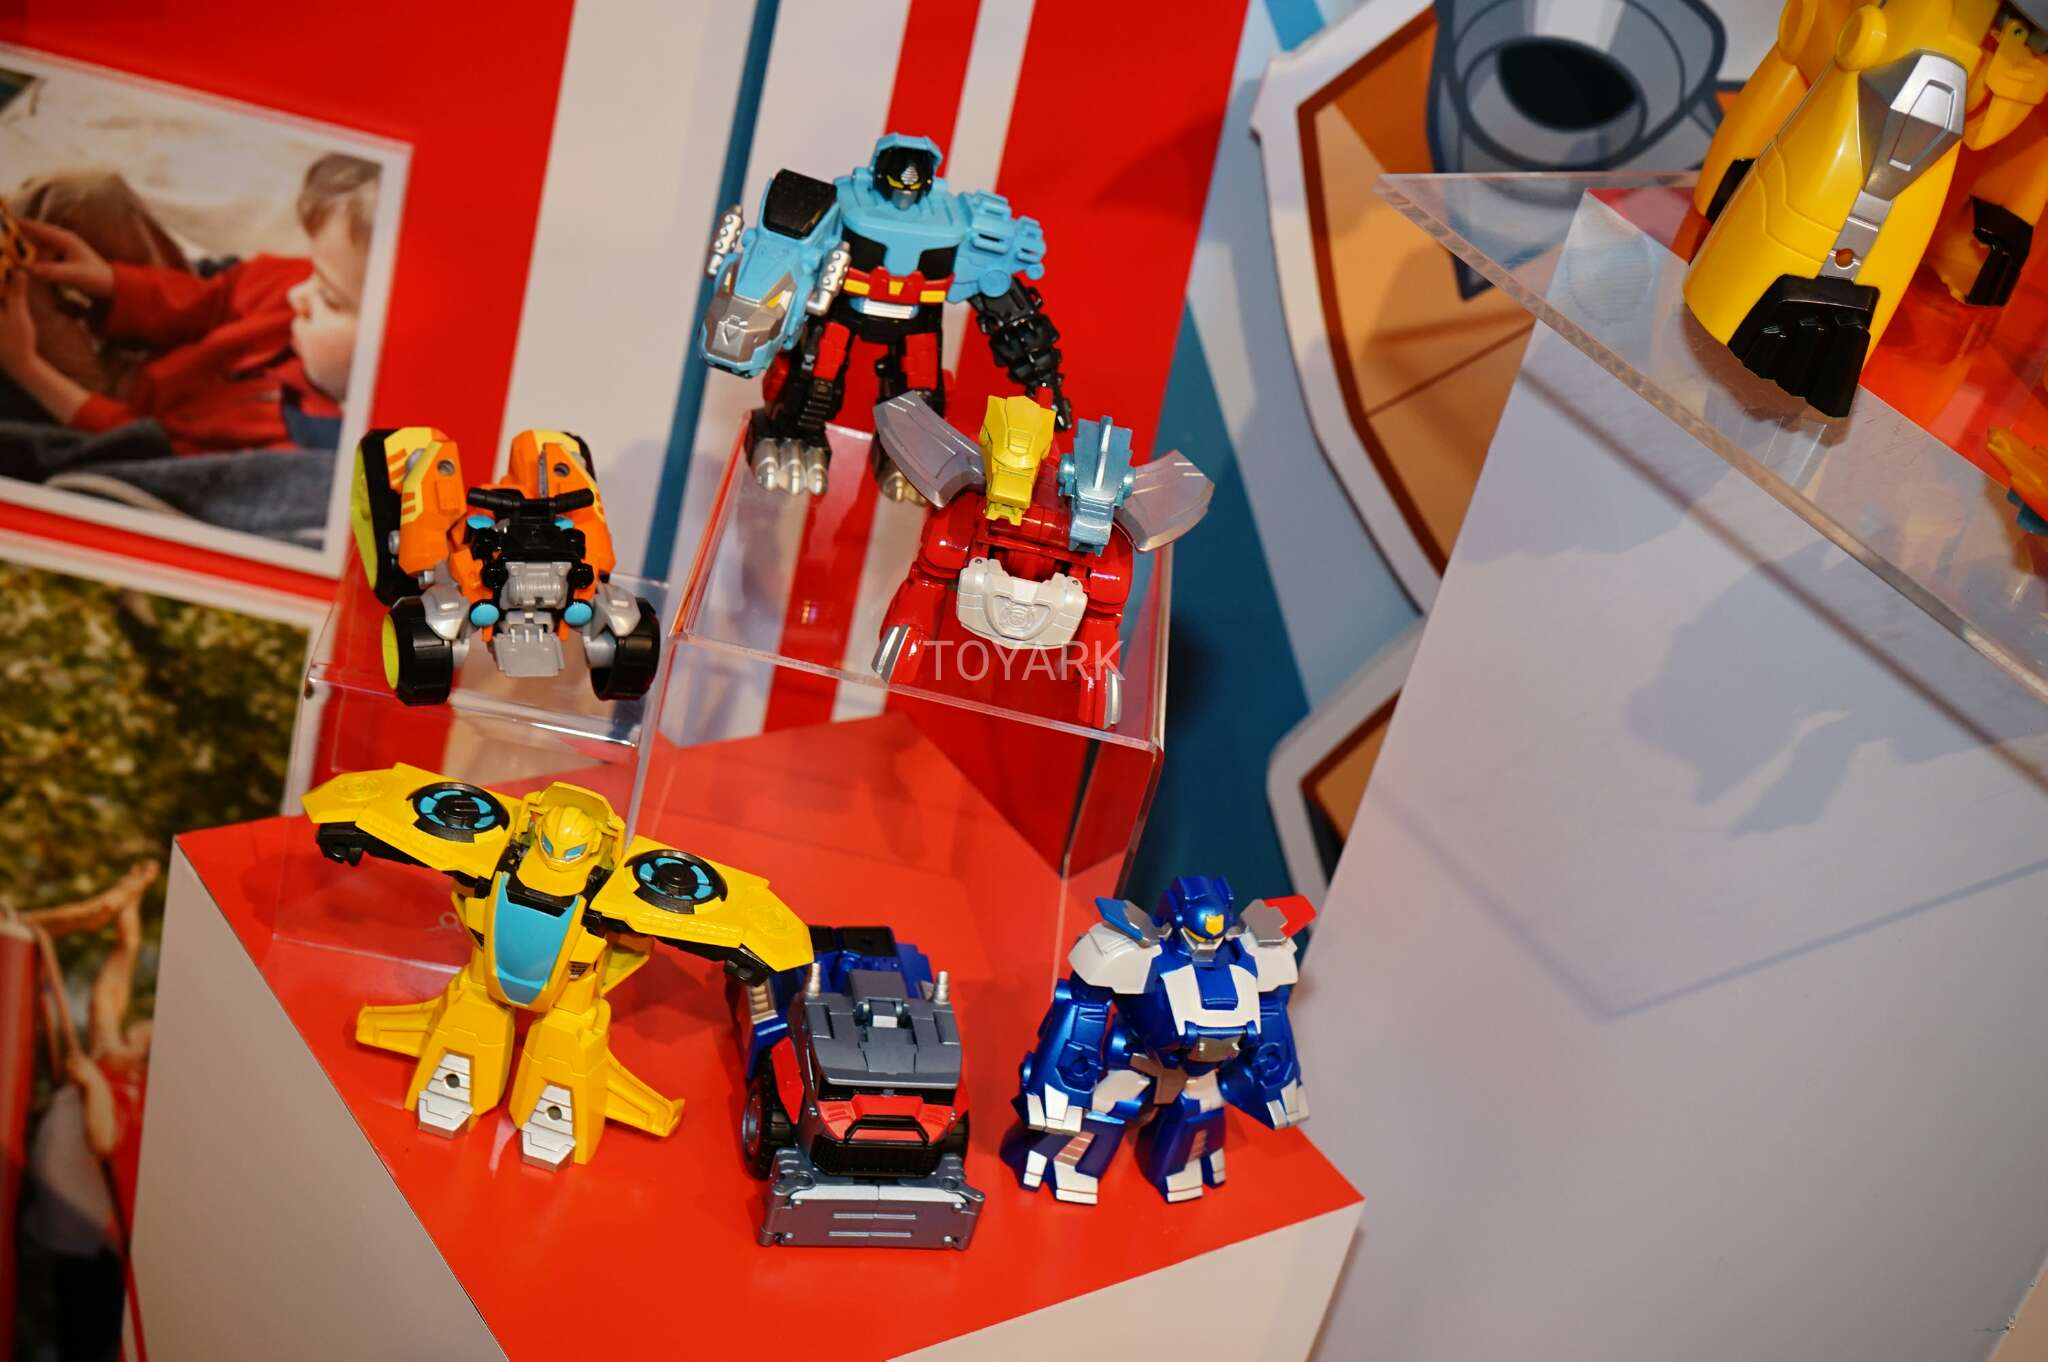 New York Toyfair 2017 Reference Links And Images